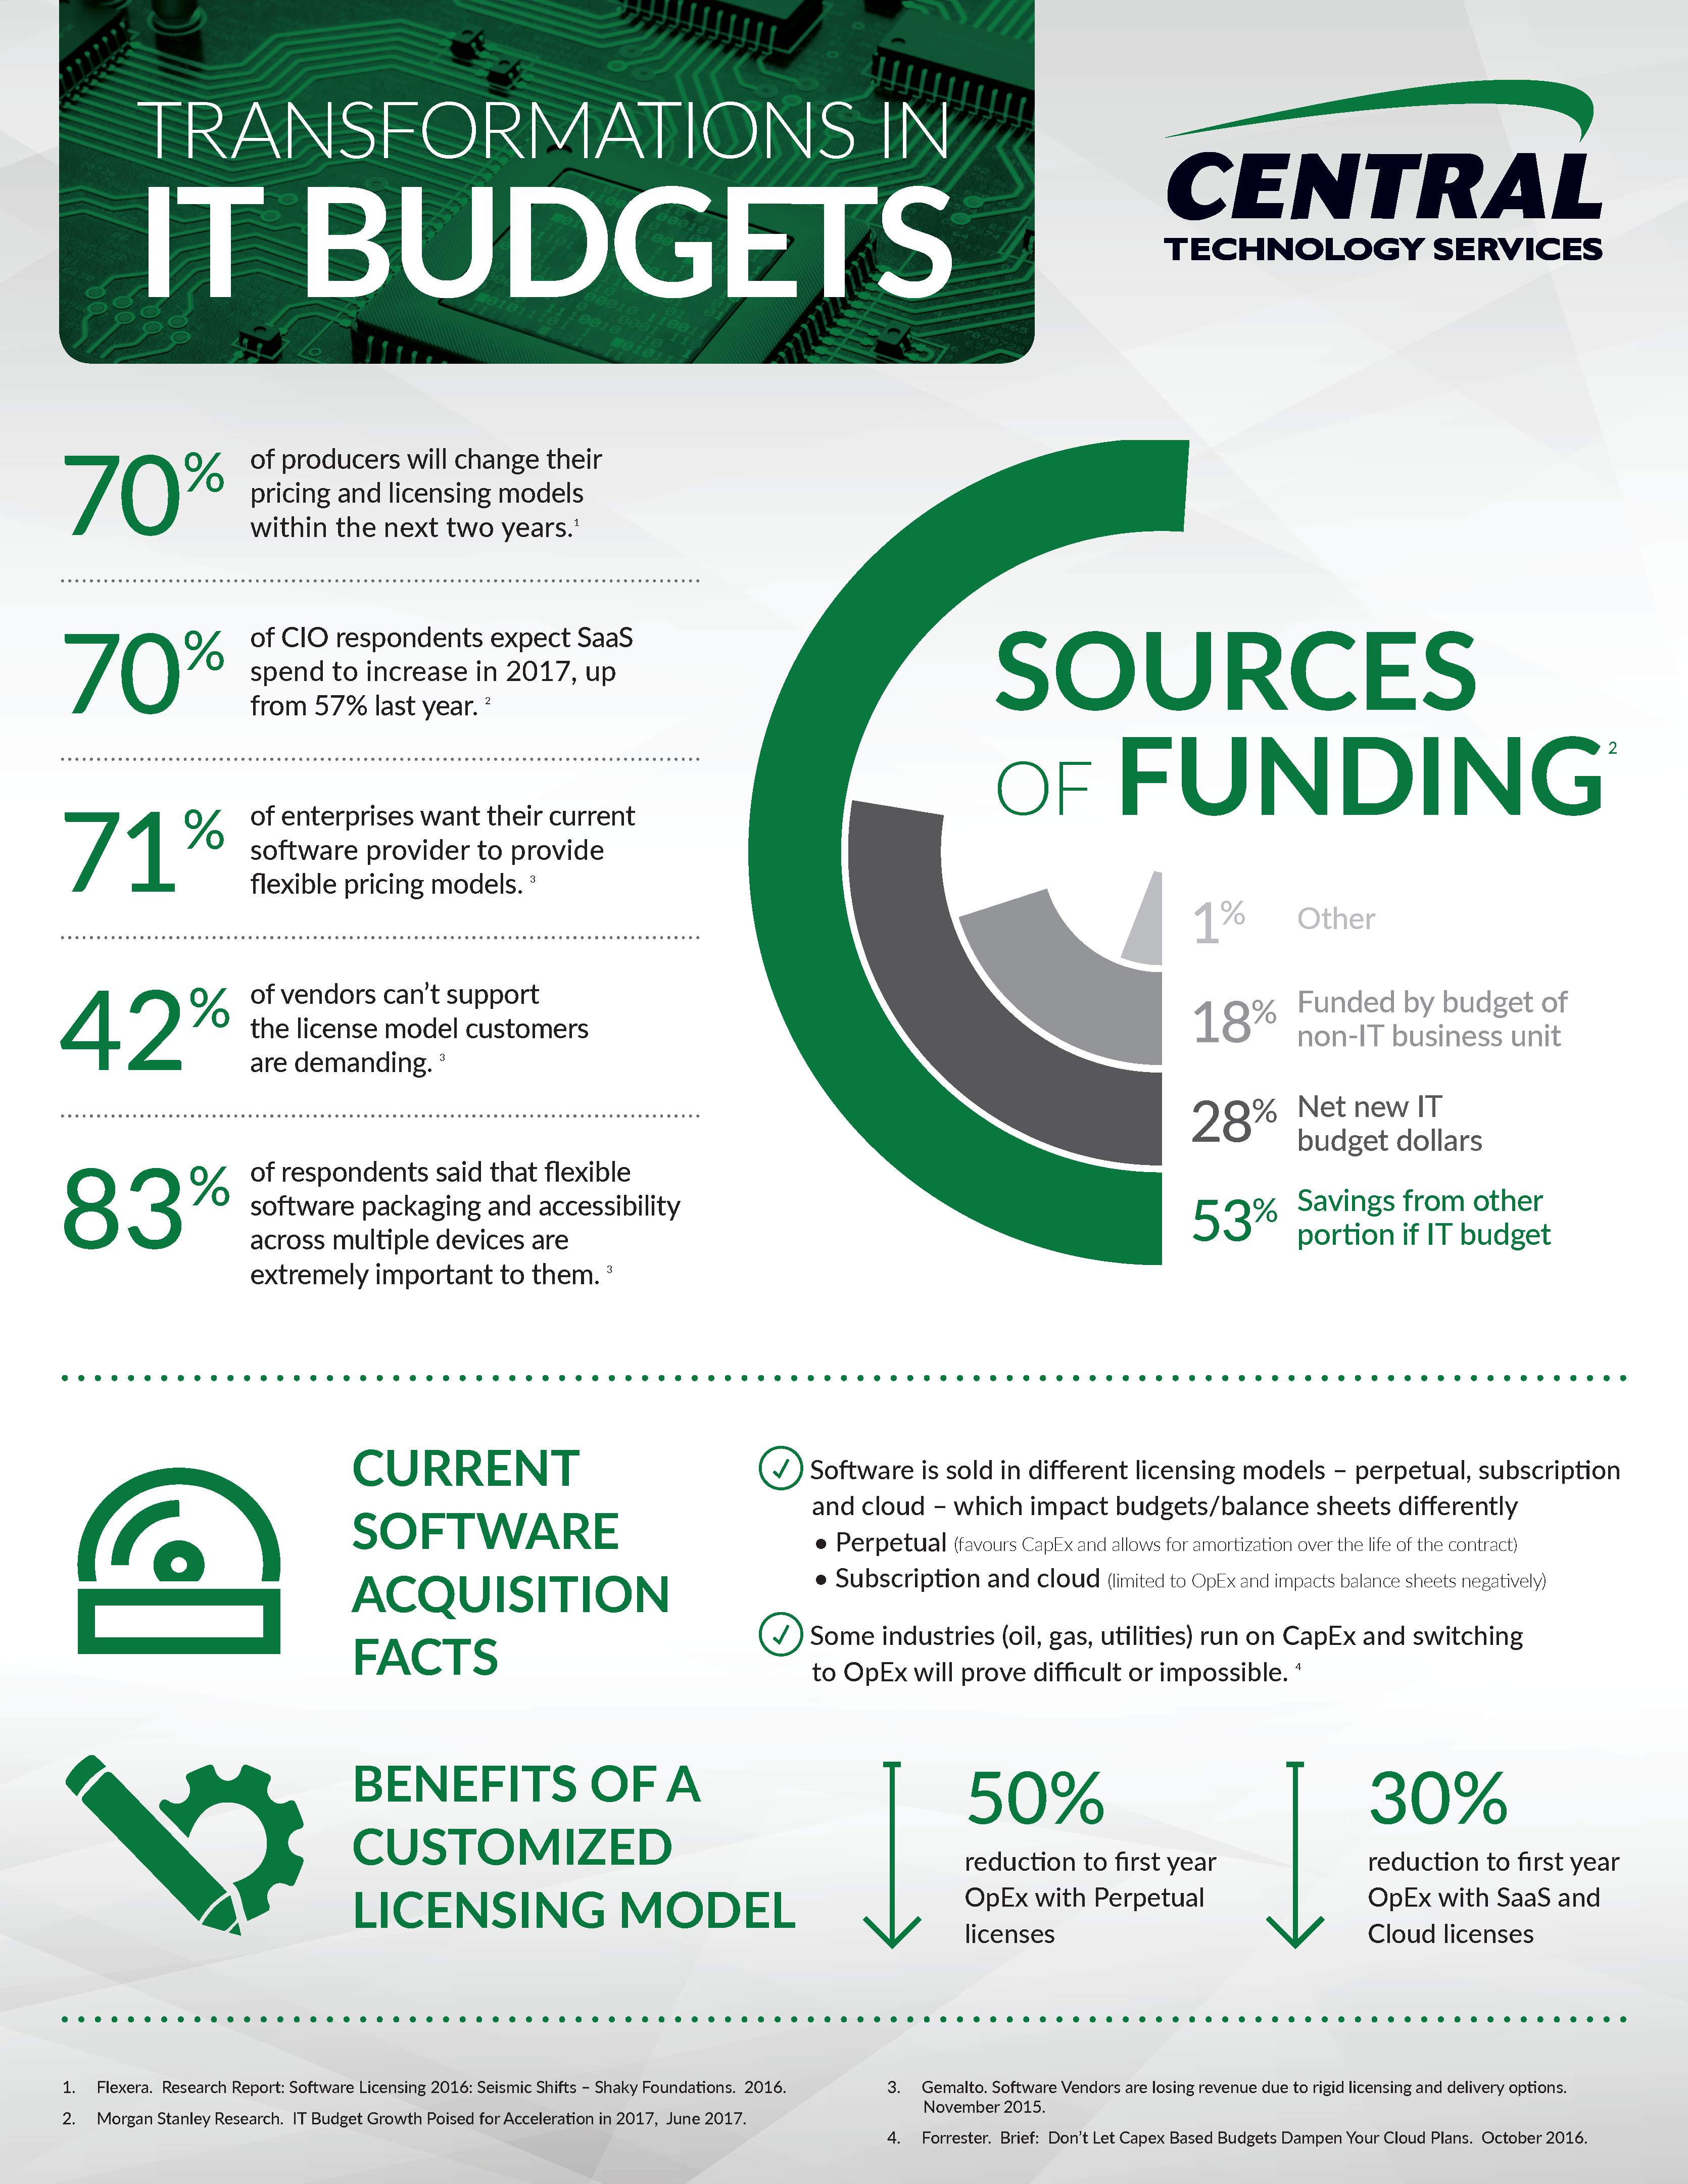 Transformations in IT Budgets - Central Technology Services